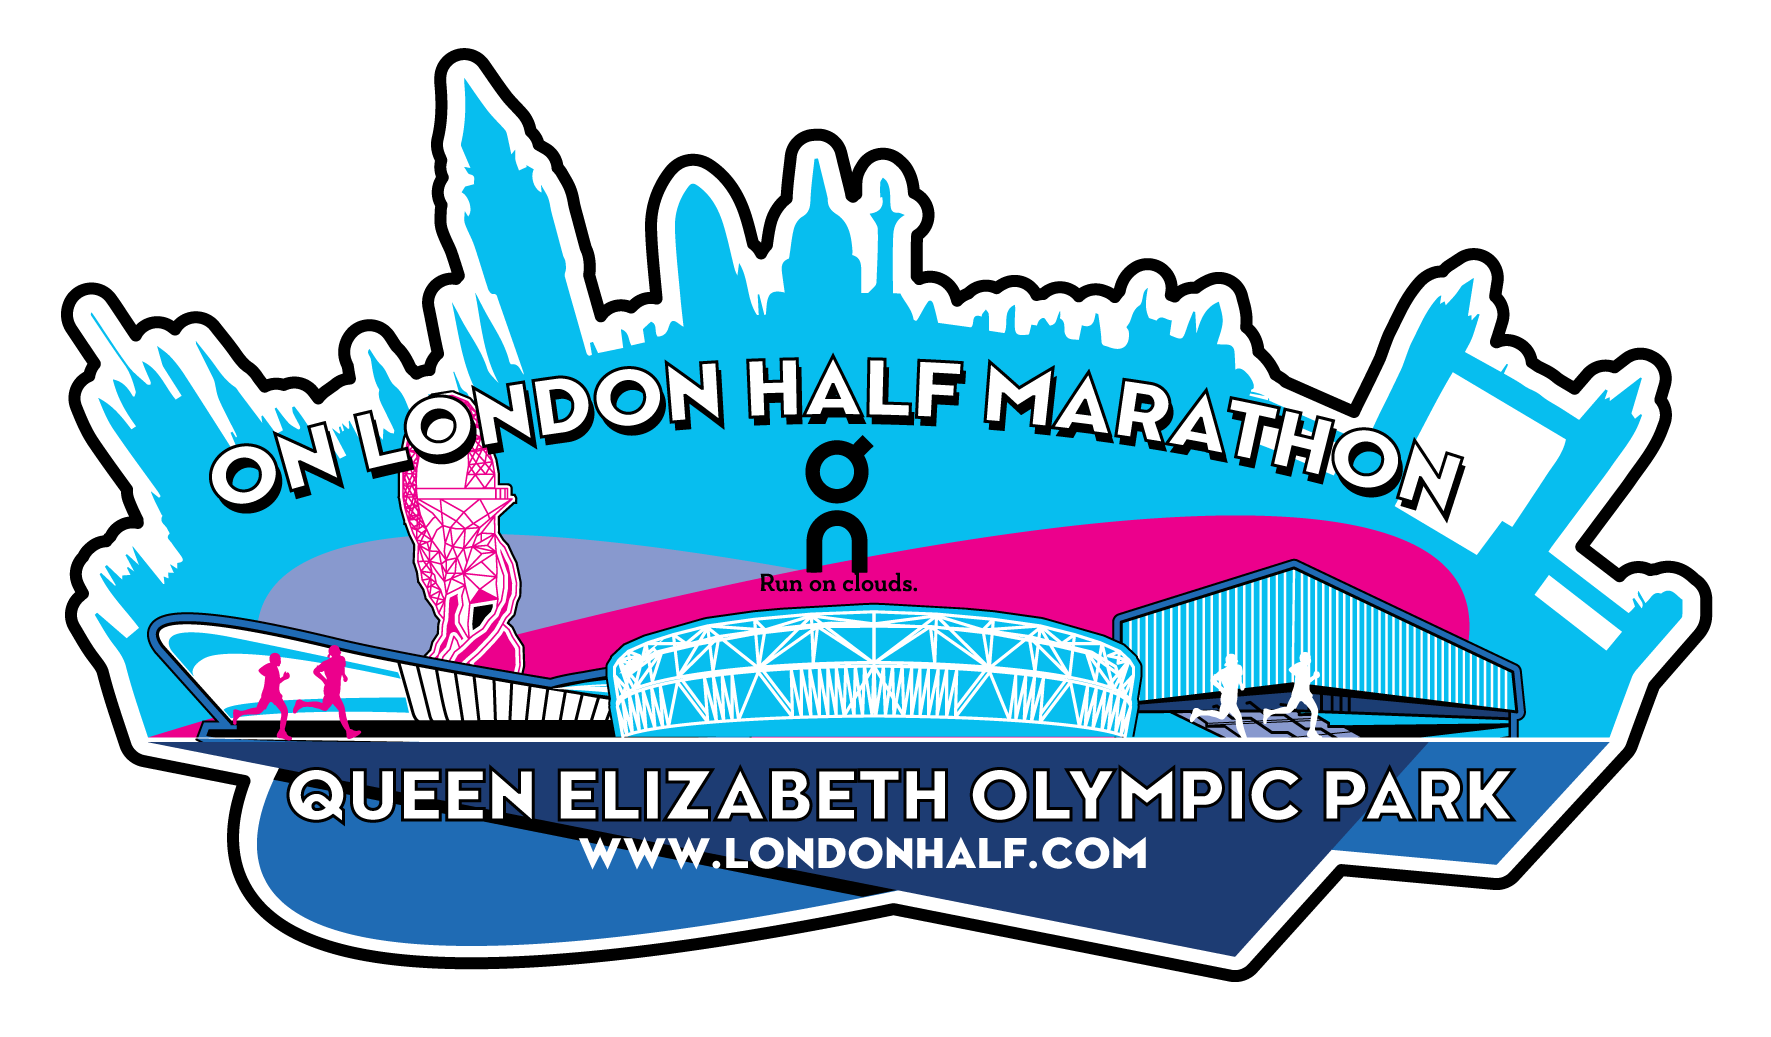 Queen Elizabeth Olympic Park Half Marathon | London Half